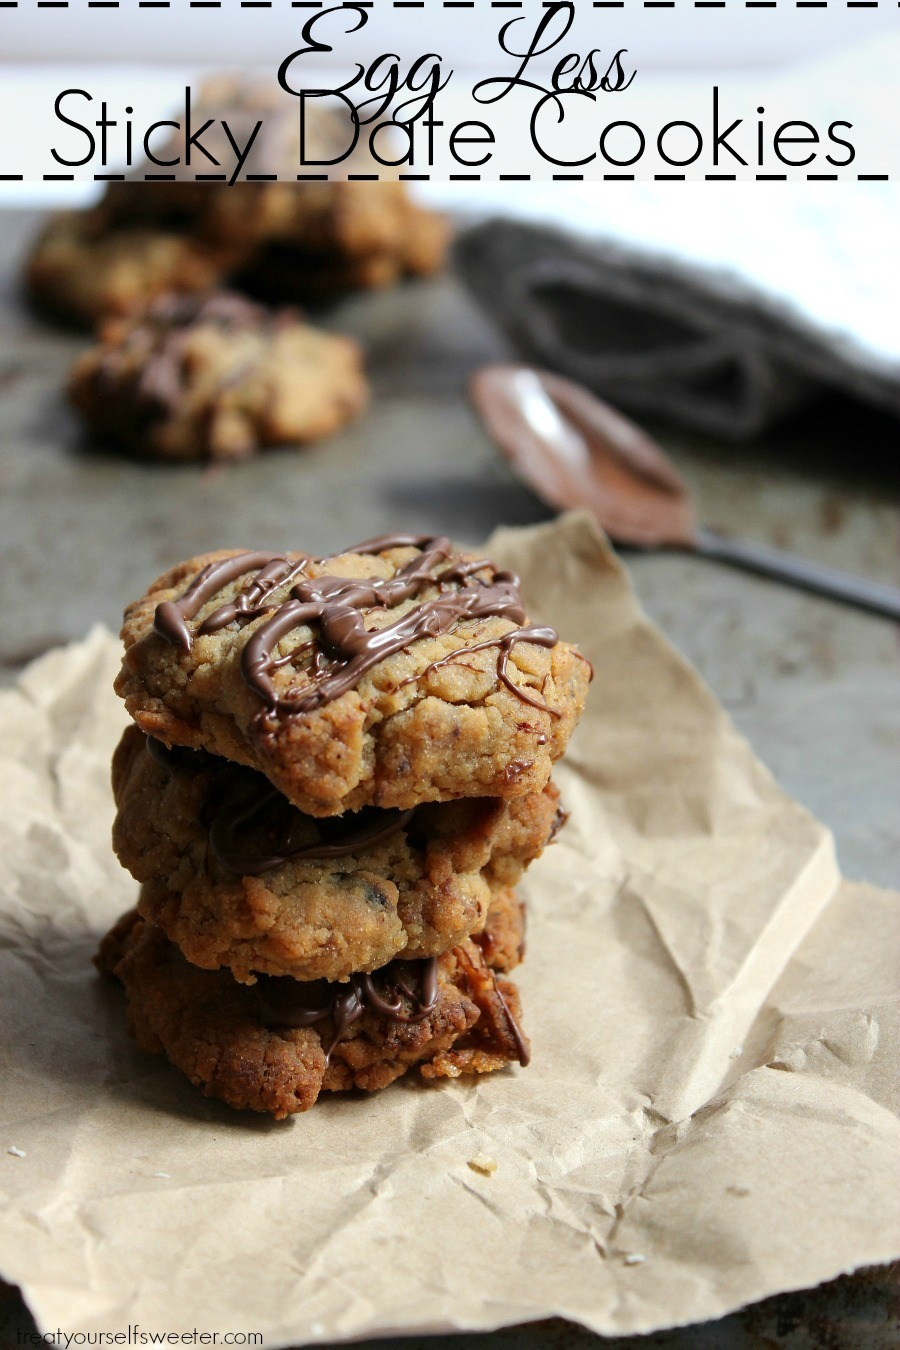 Eggless Sticky Date Cookies